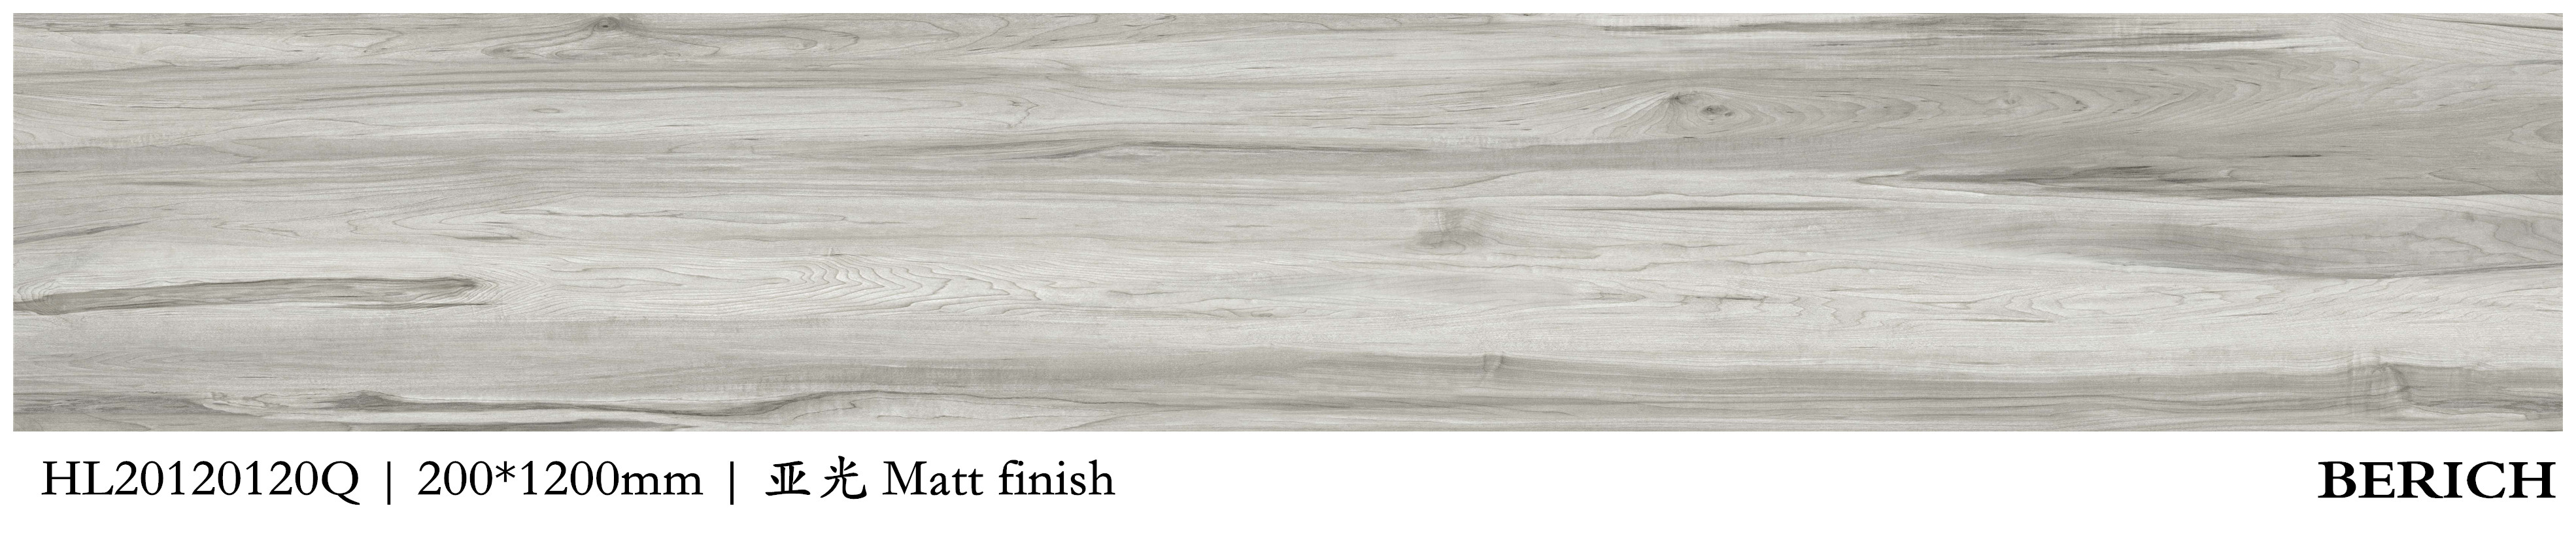 Berich wood look rustic matte floor tiles